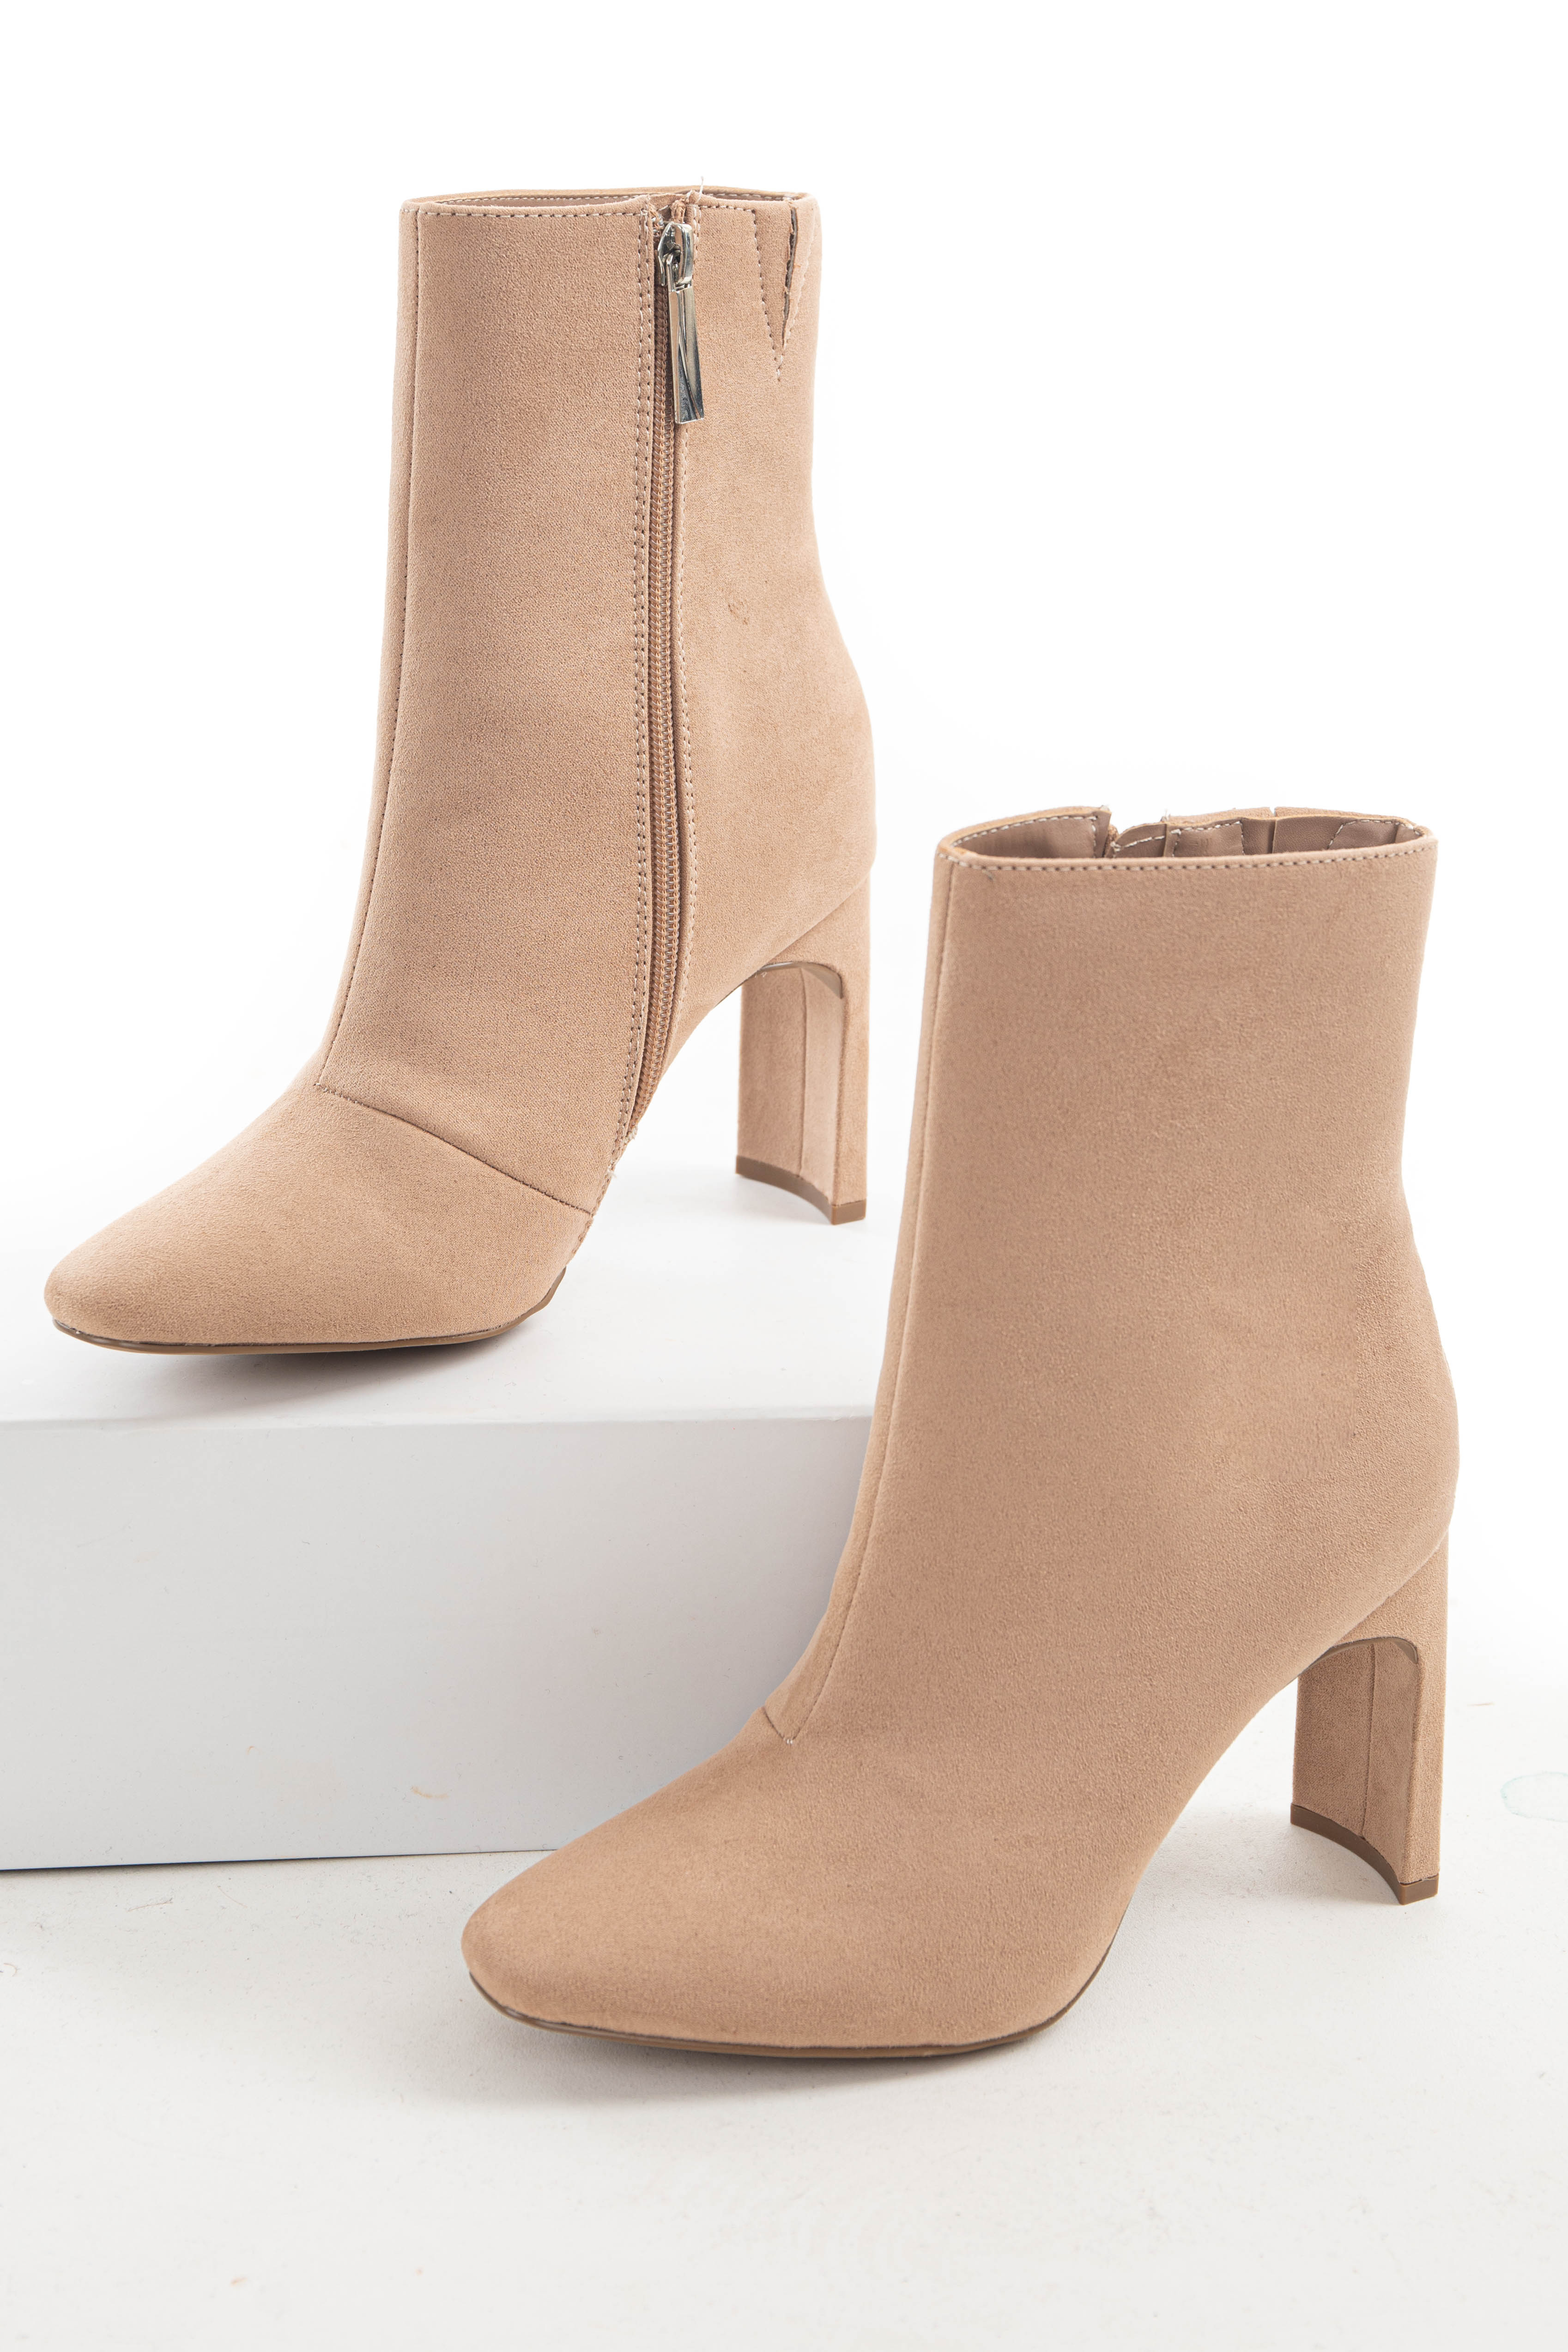 Nude Faux Suede Thin Curved High Heeled Bootie